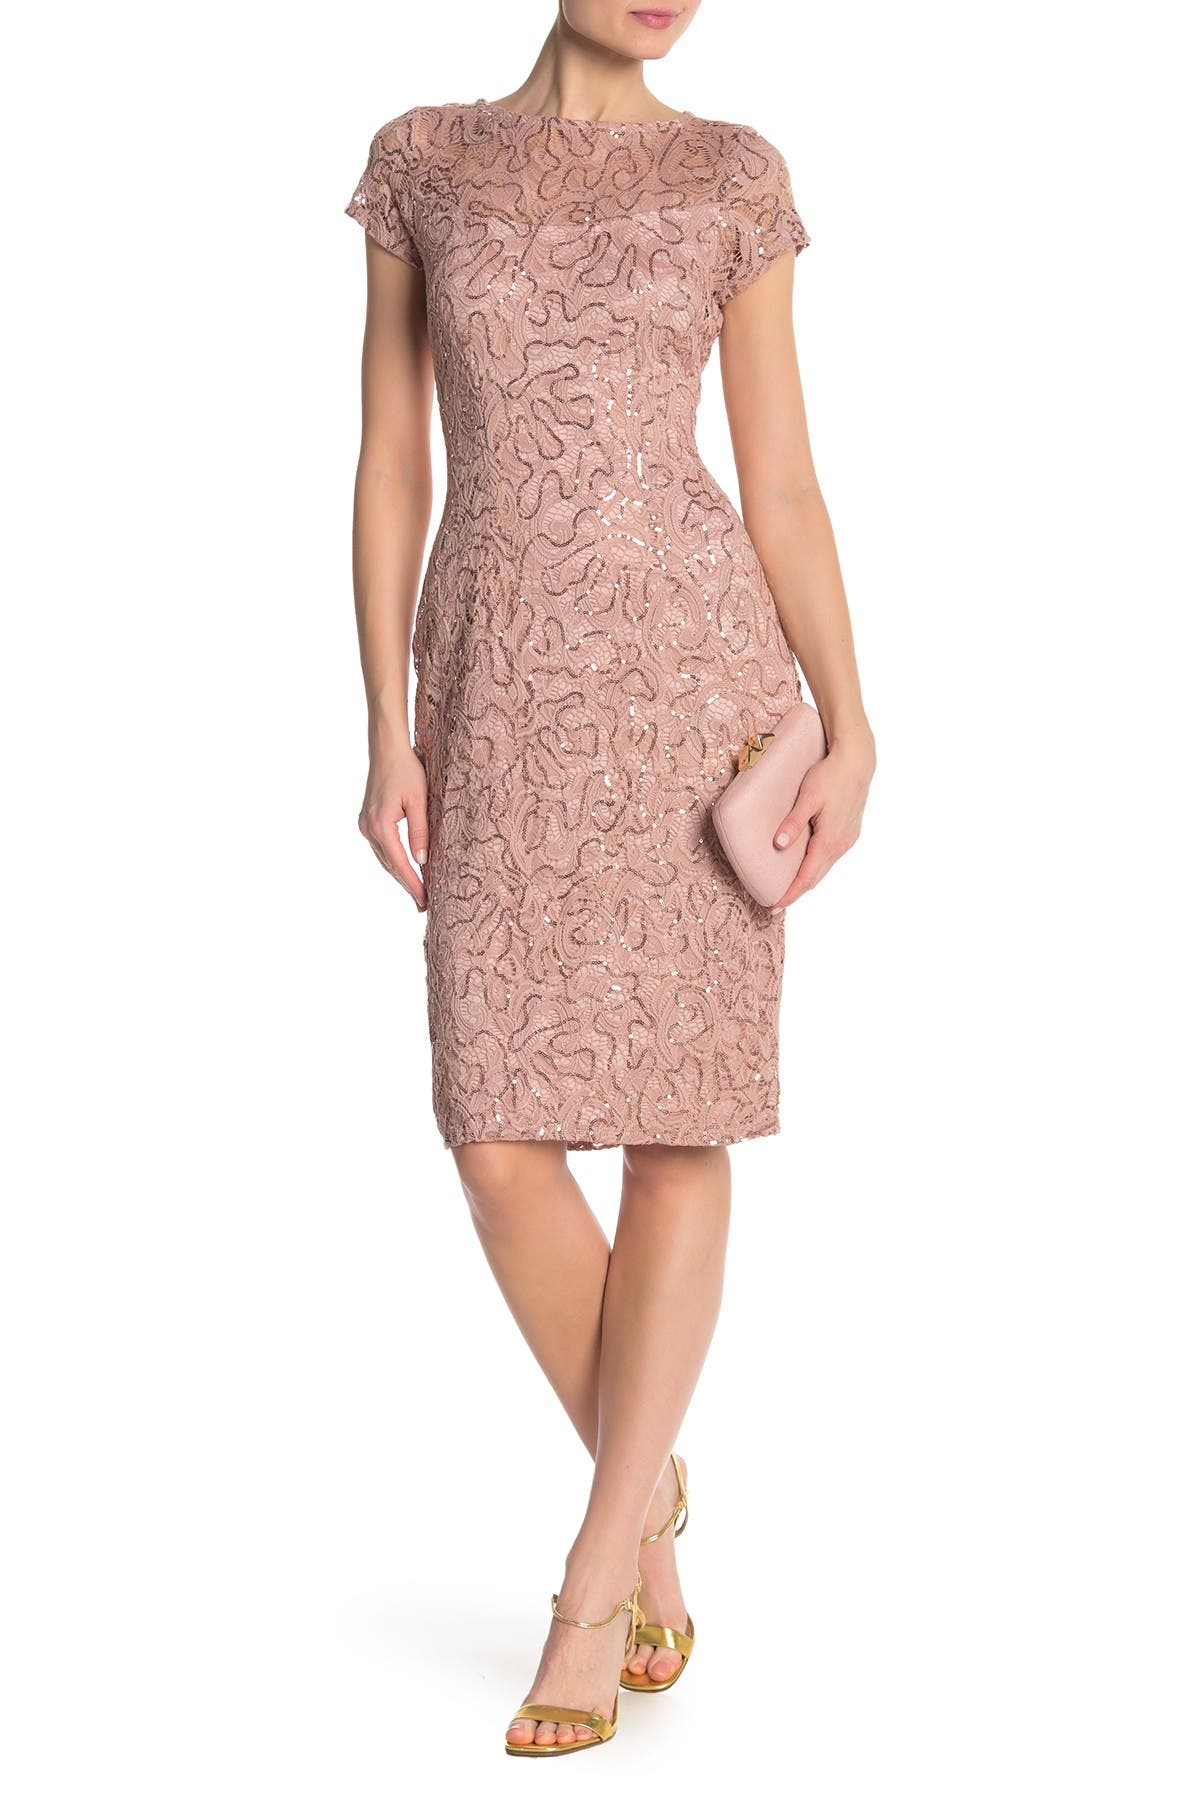 Image of Marina Sequin Lace Cap Sleeve Sheath Dress